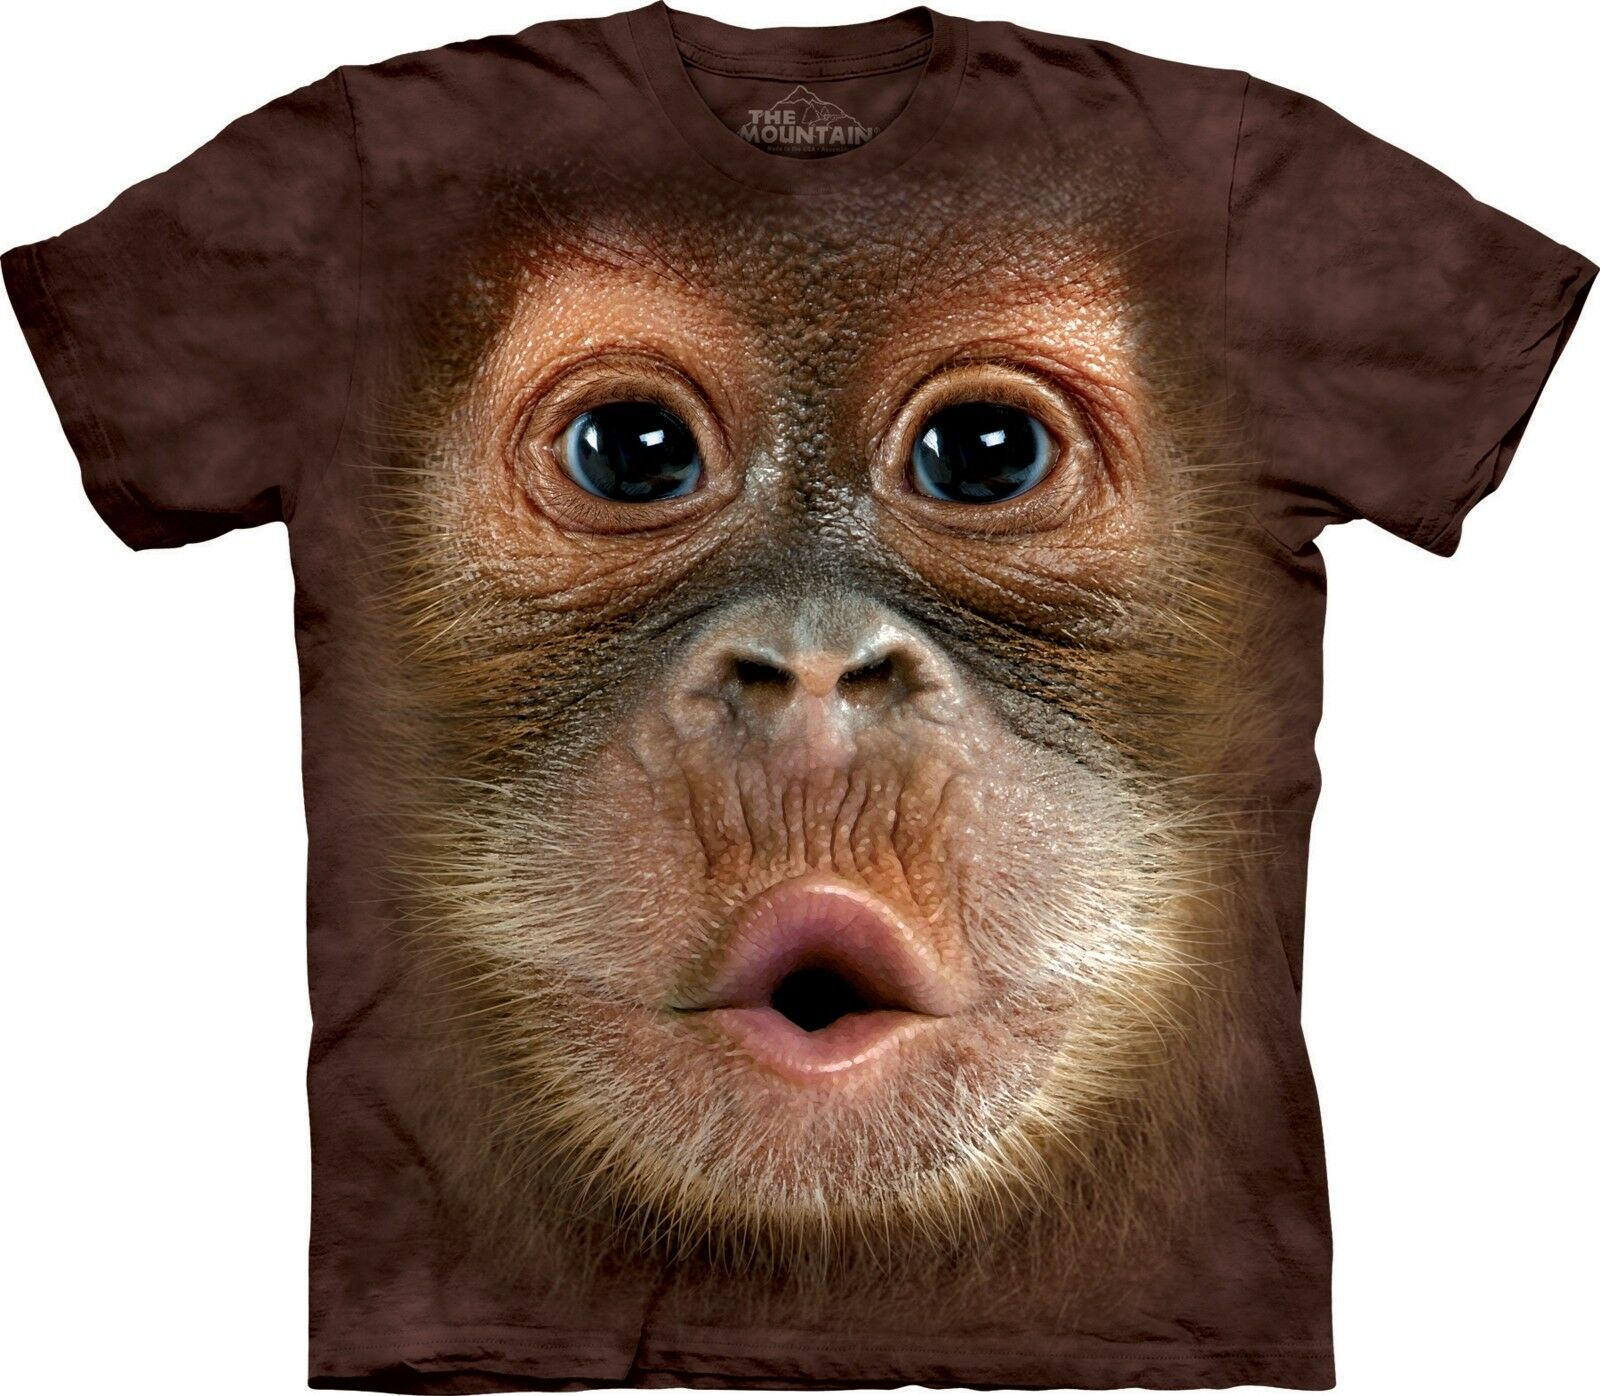 Big Face Baby Orangutan T Shirt Adult Unisex The Mountain